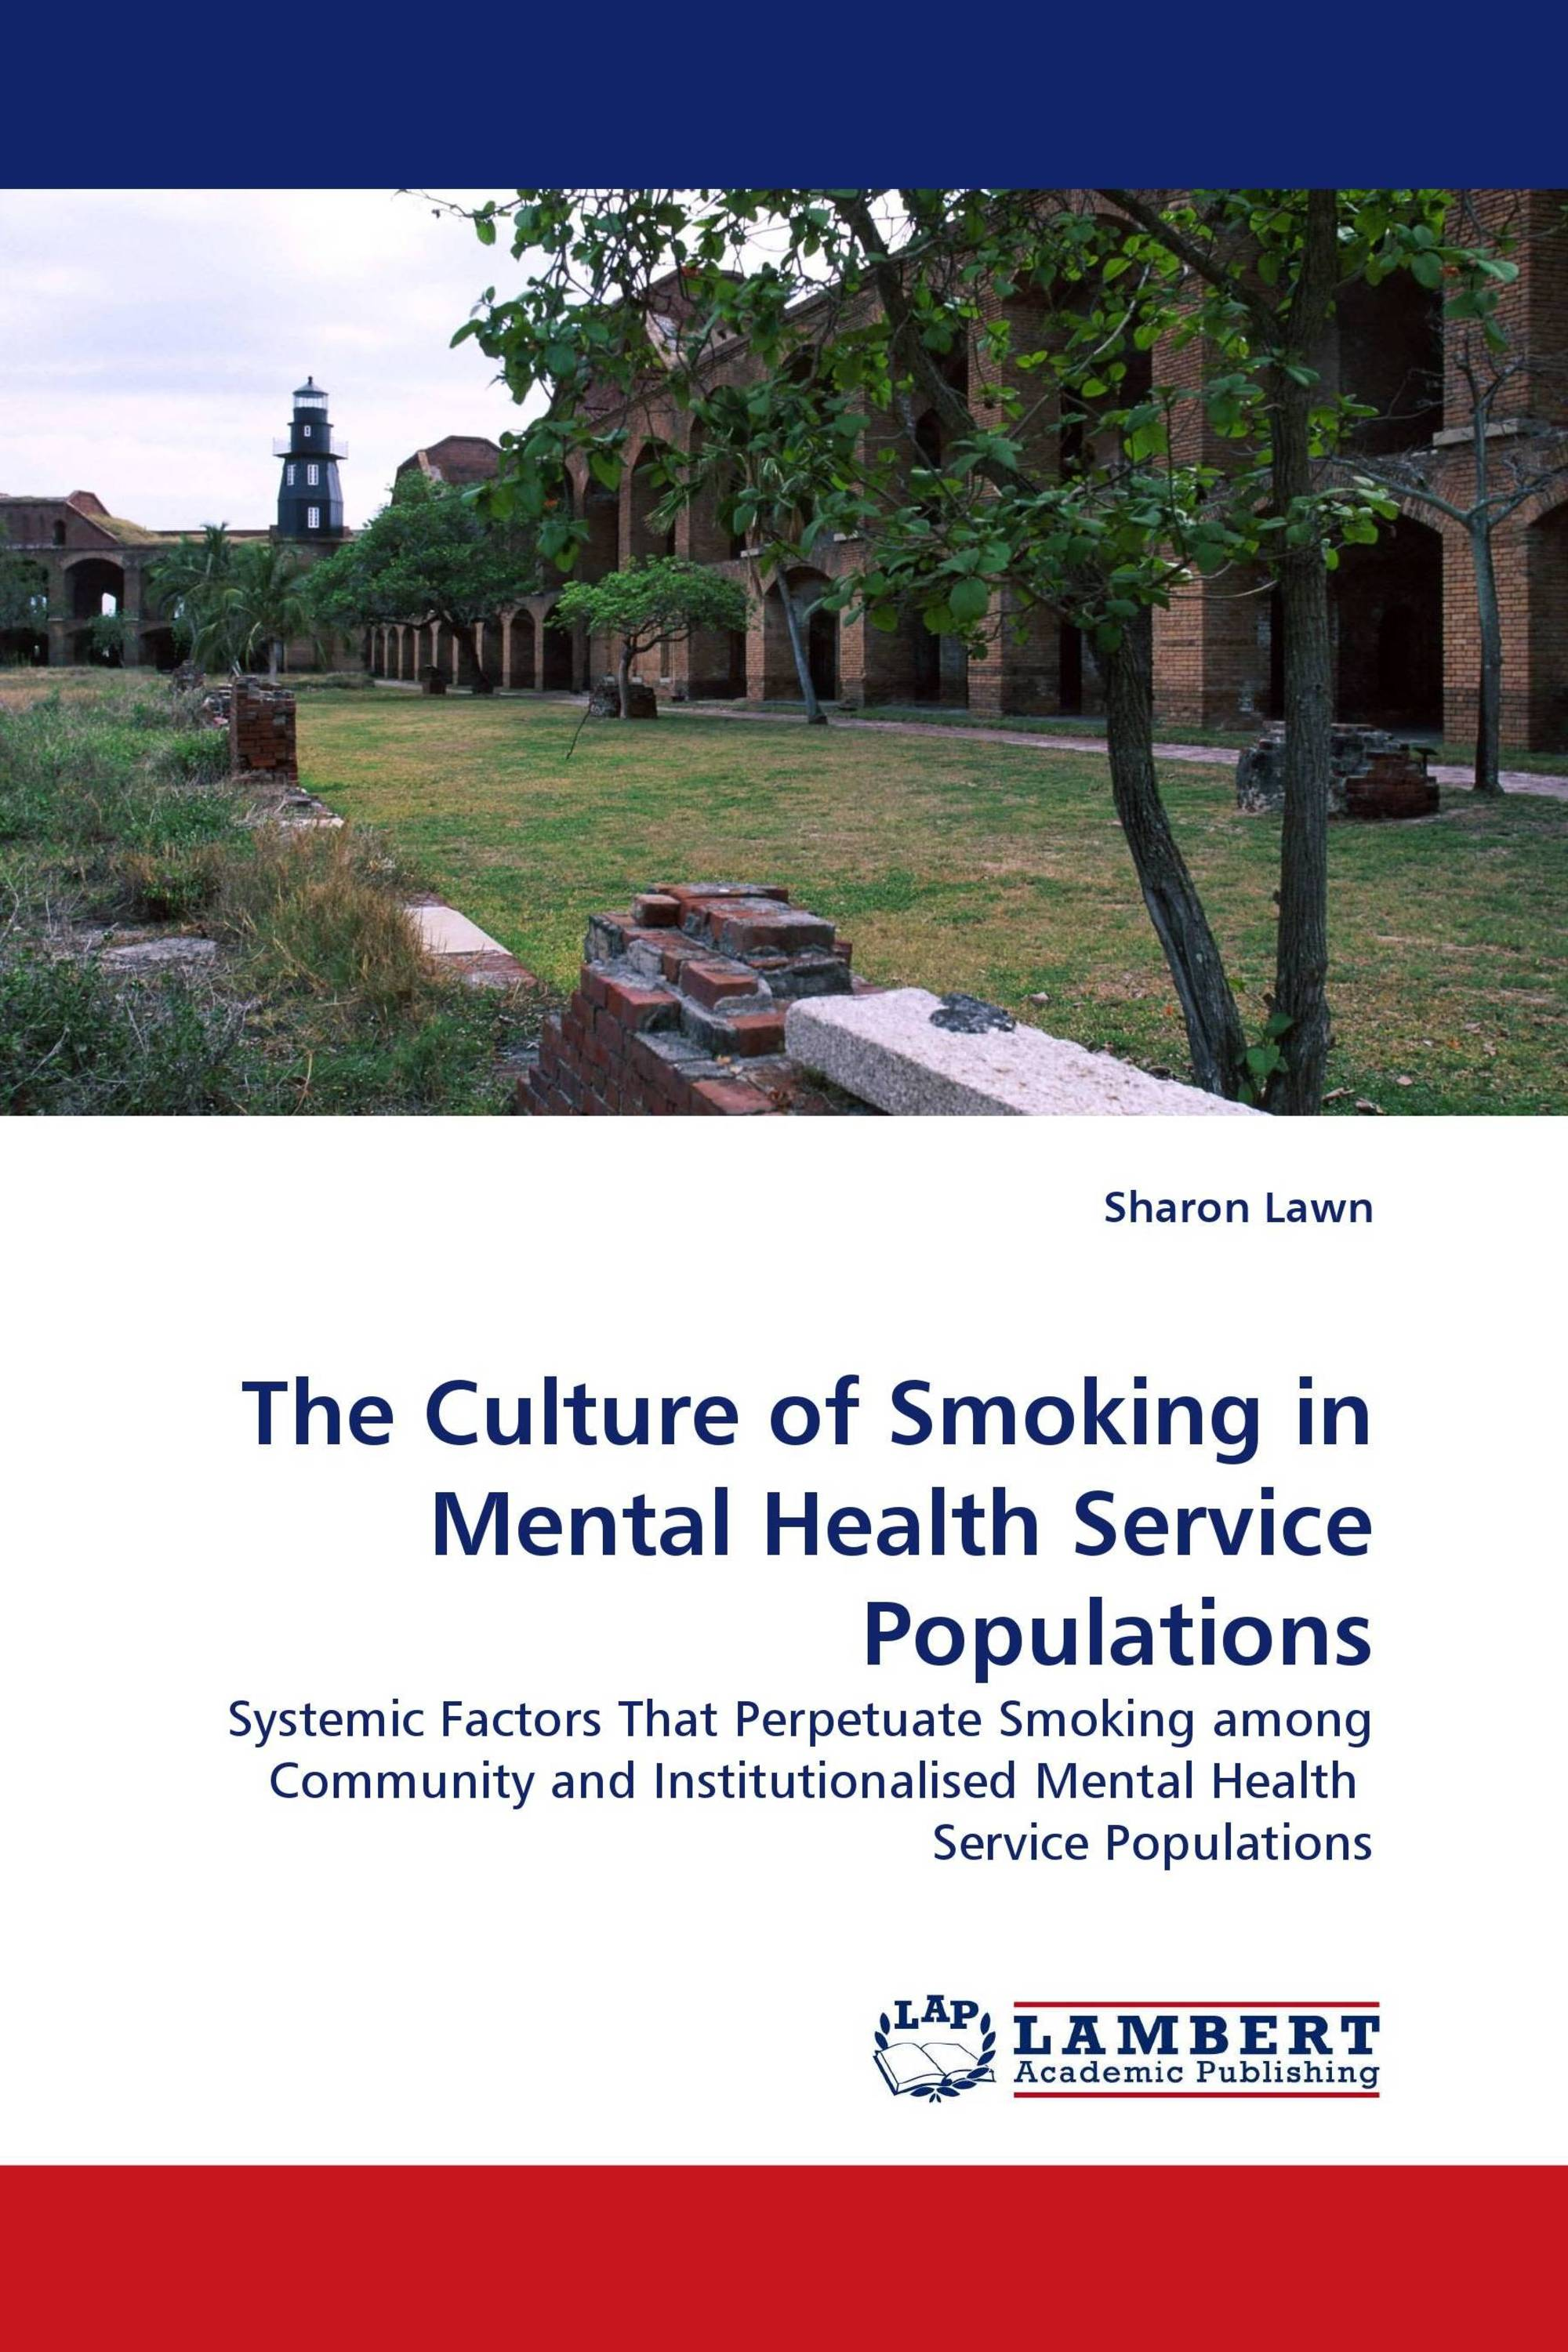 The Culture of Smoking in Mental Health Service Populations